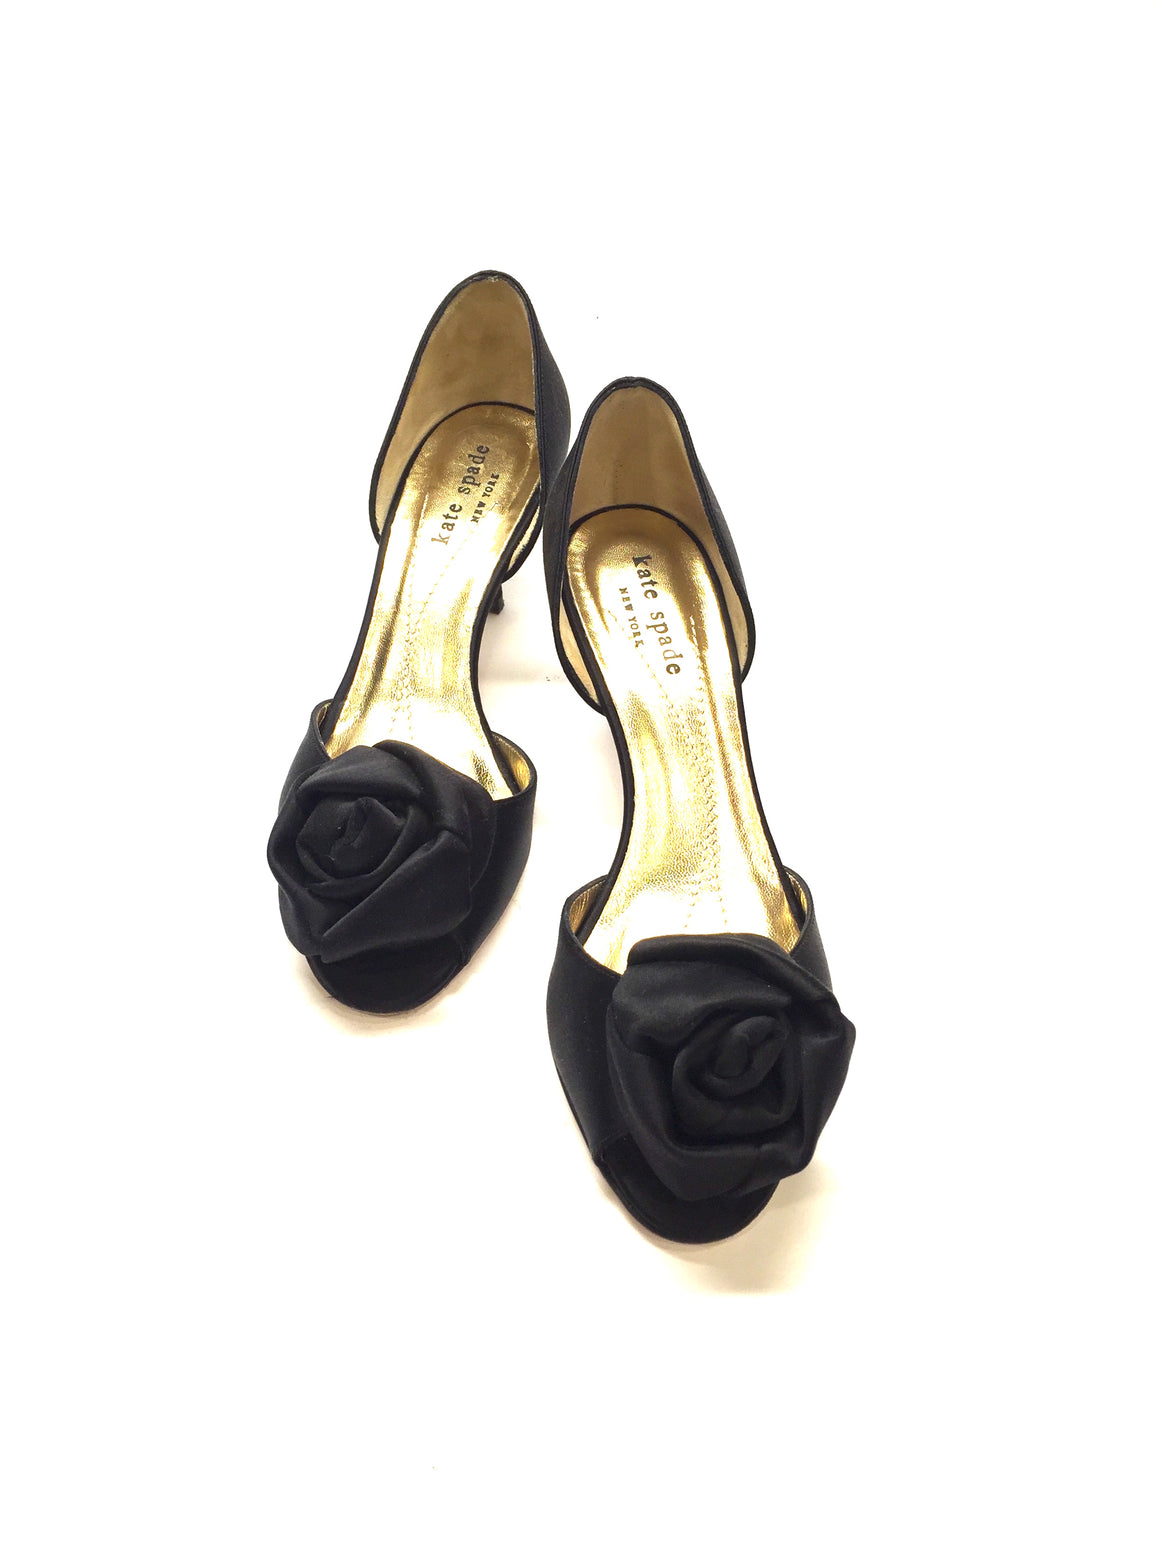 KATE SPADE Black Silk Rosette Accent Peep-Toe D'Orsay Kitten Heel Pumps Sz6B